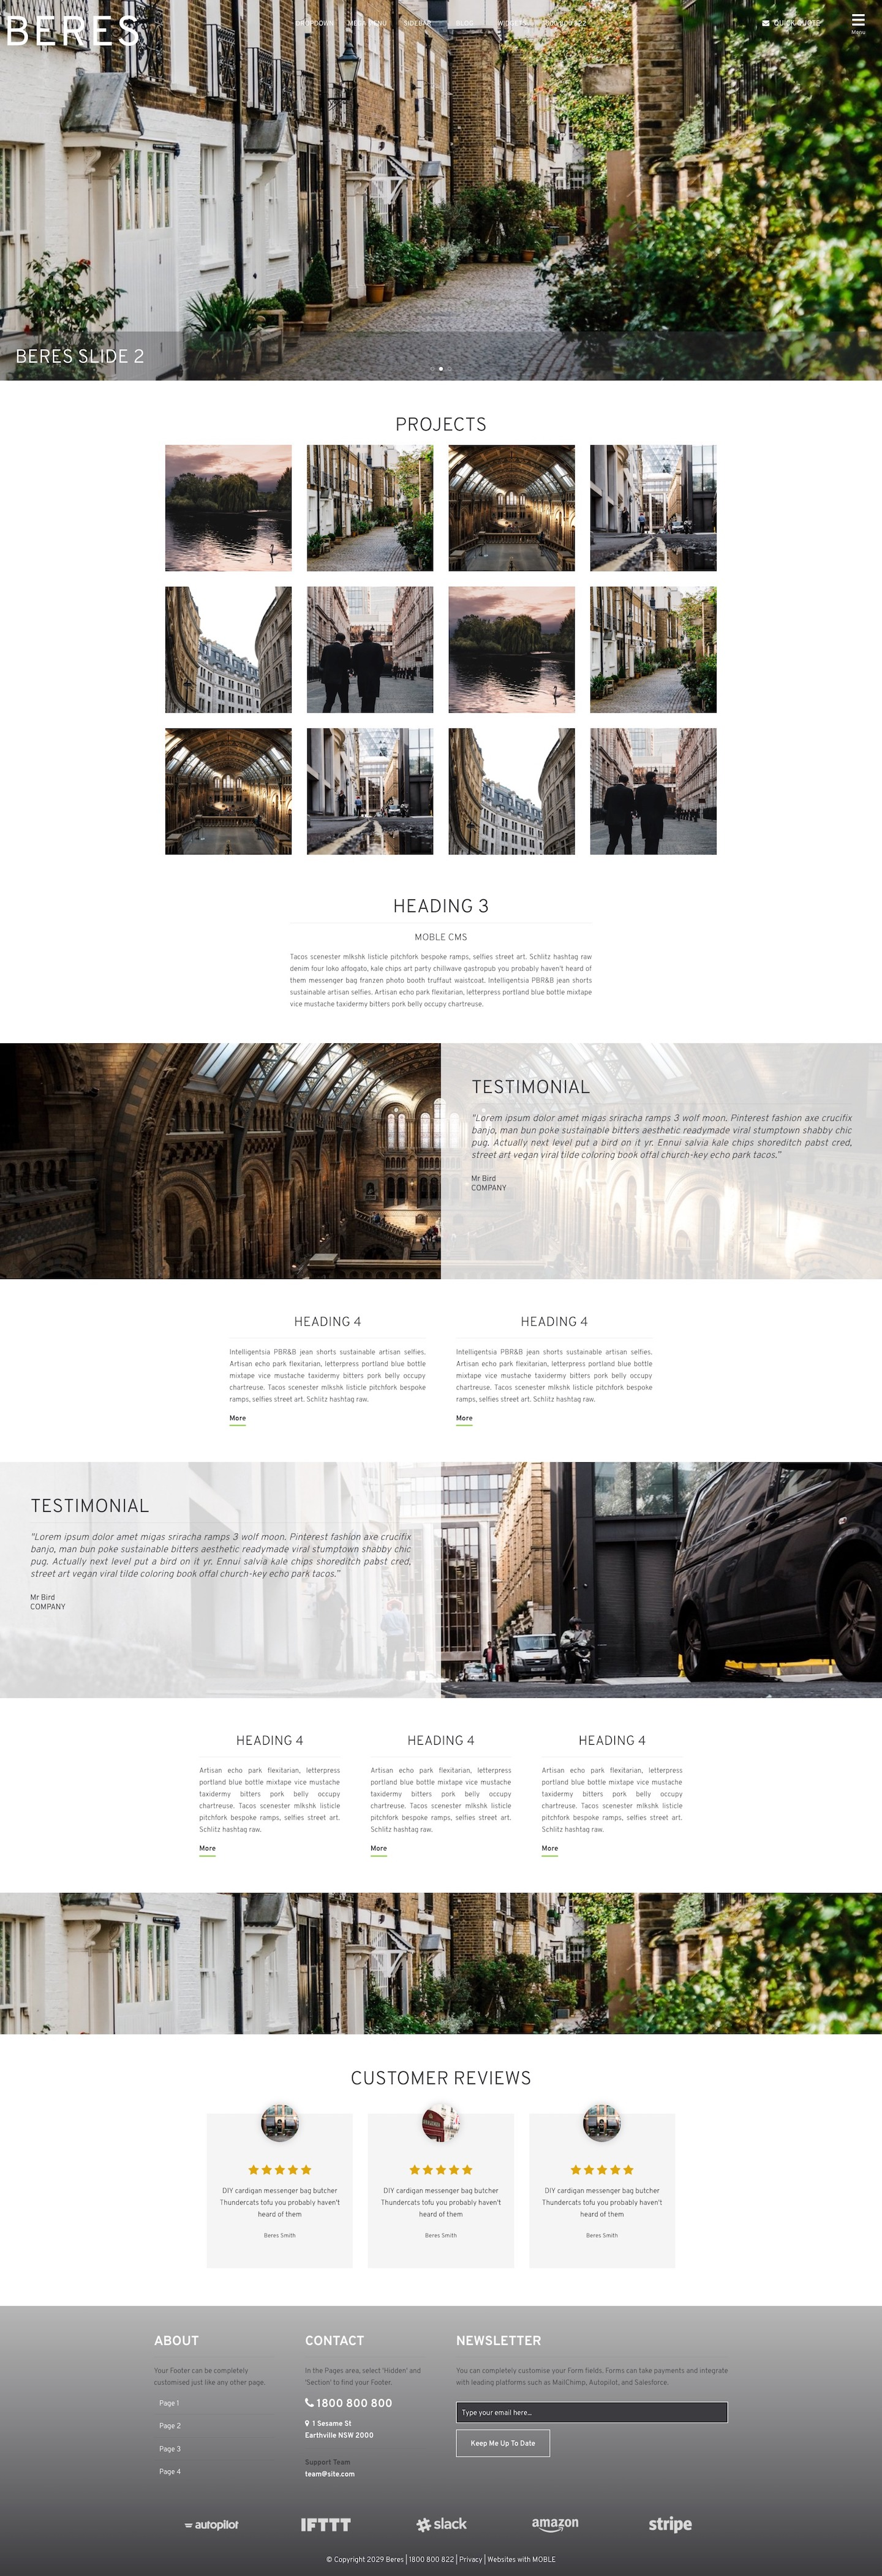 Beres Website Design